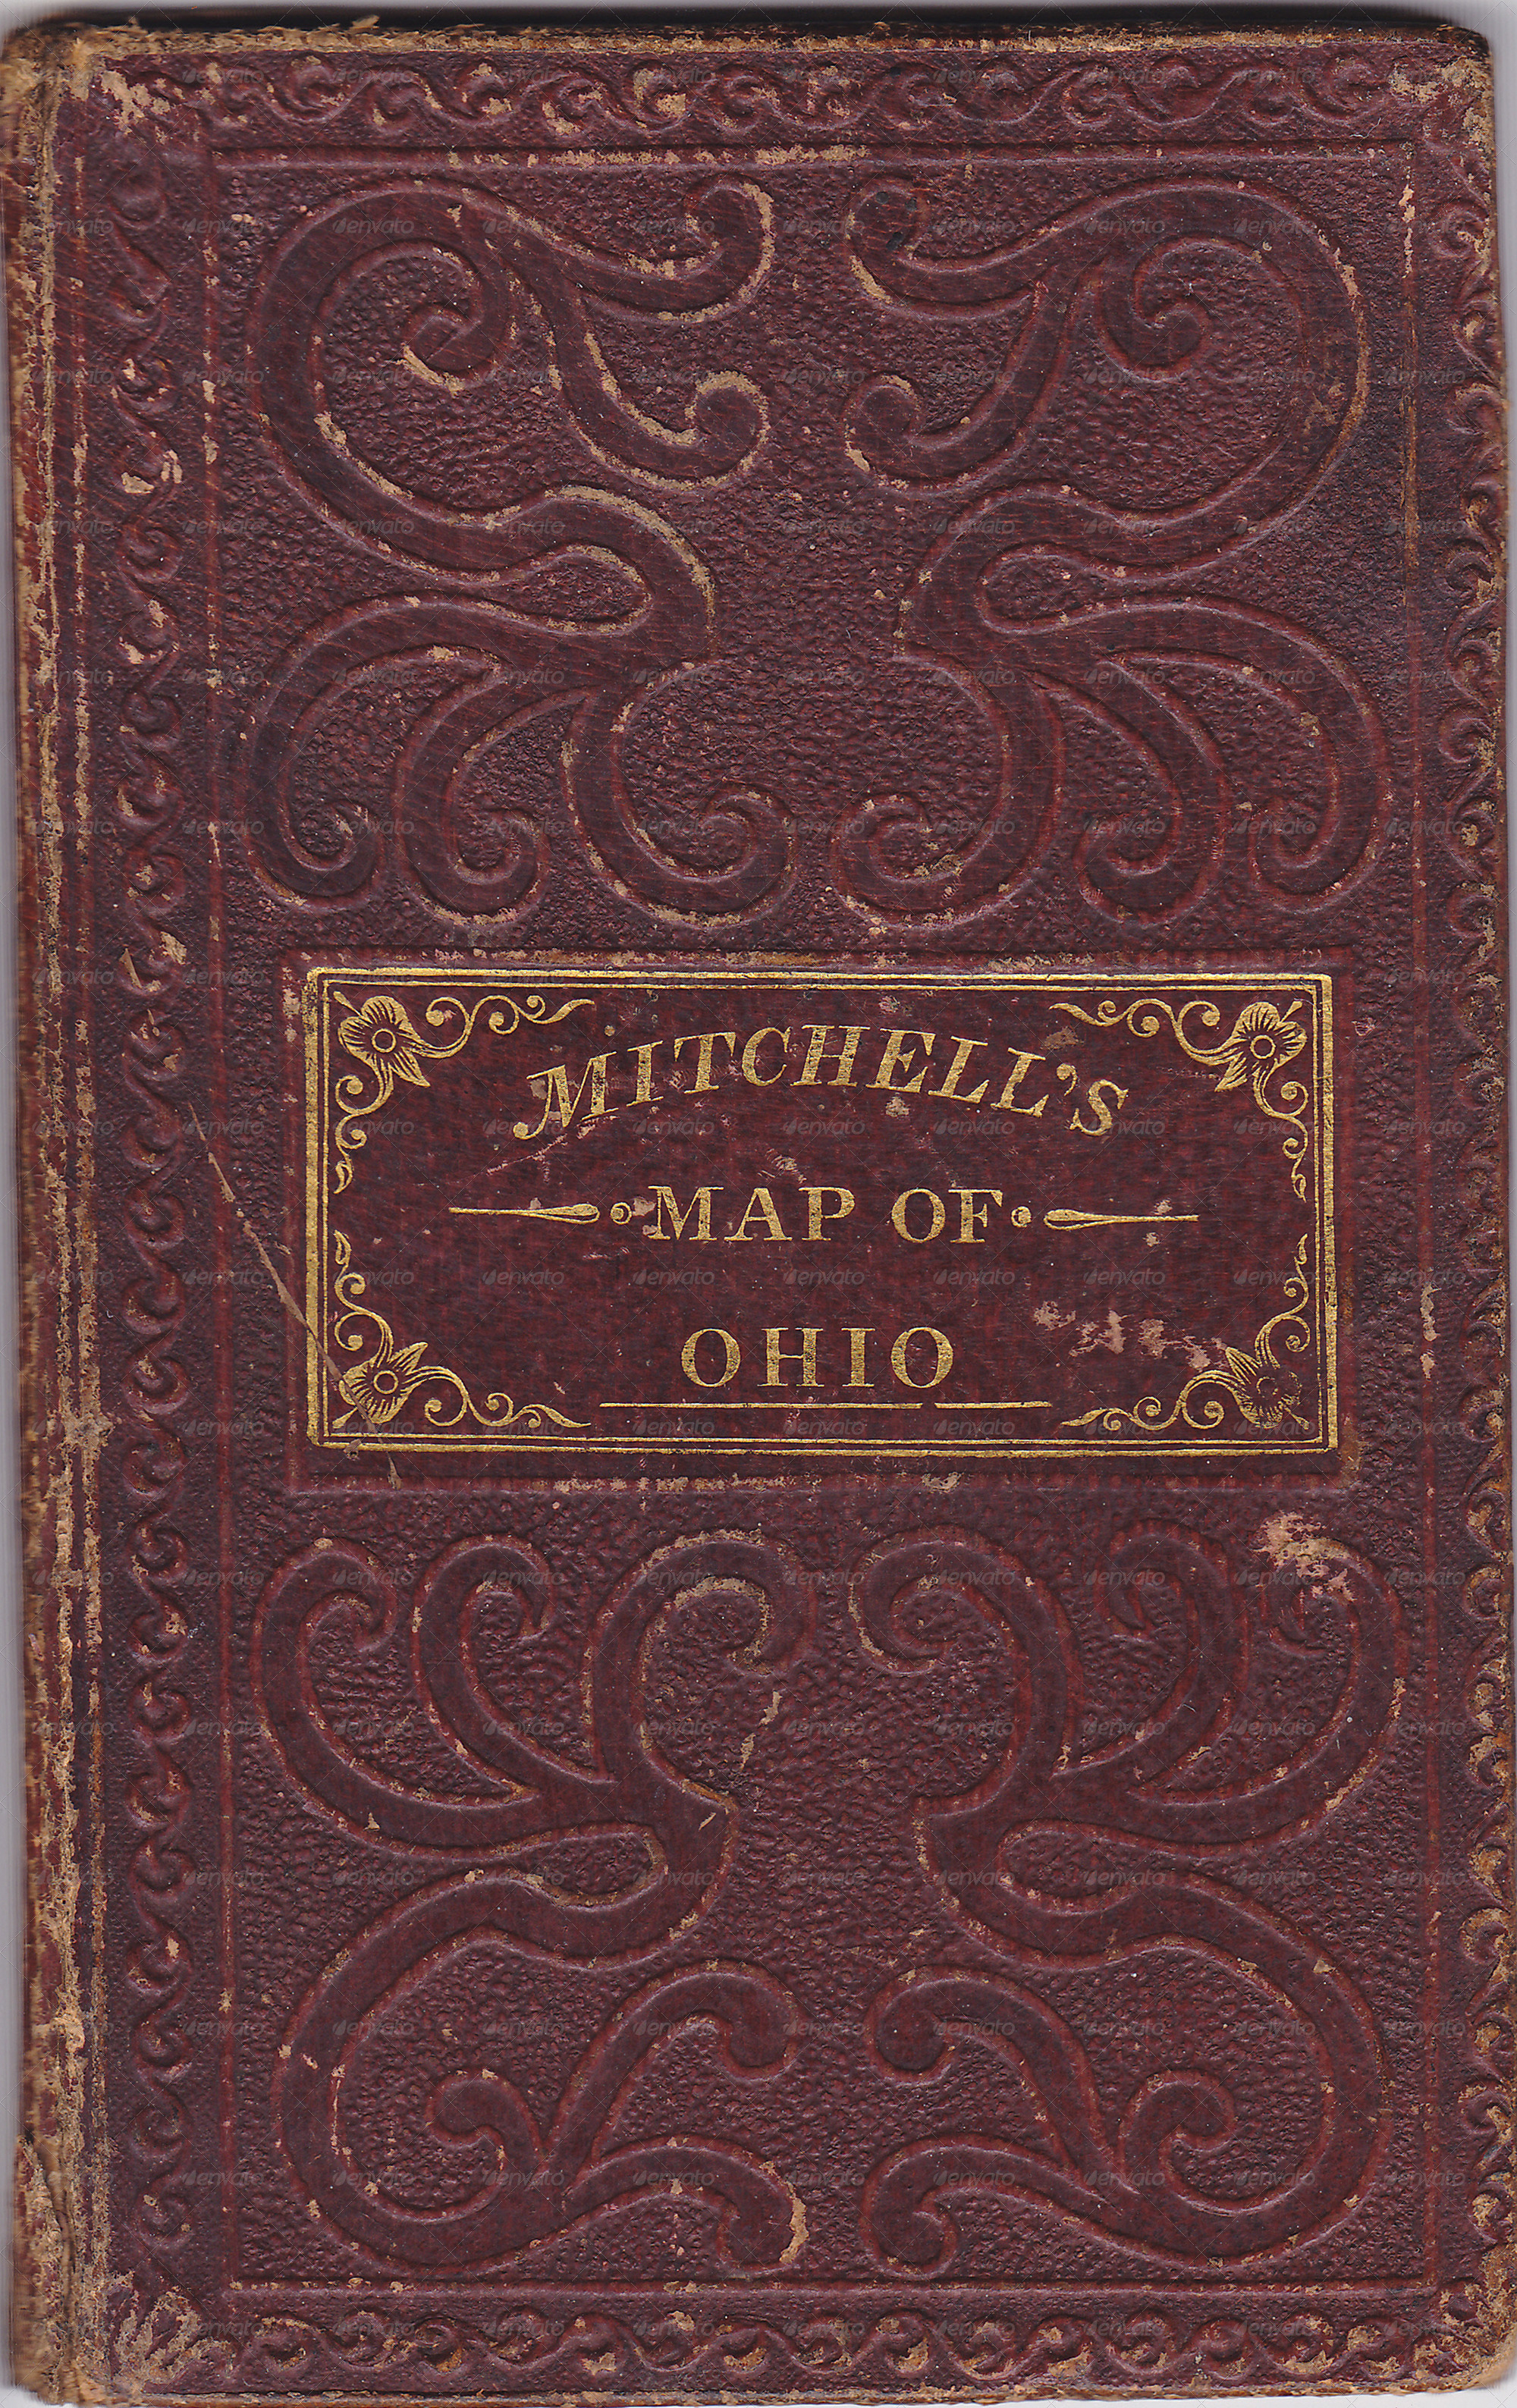 Old Book Cover Images : Antique book cover by beachmedia graphicriver